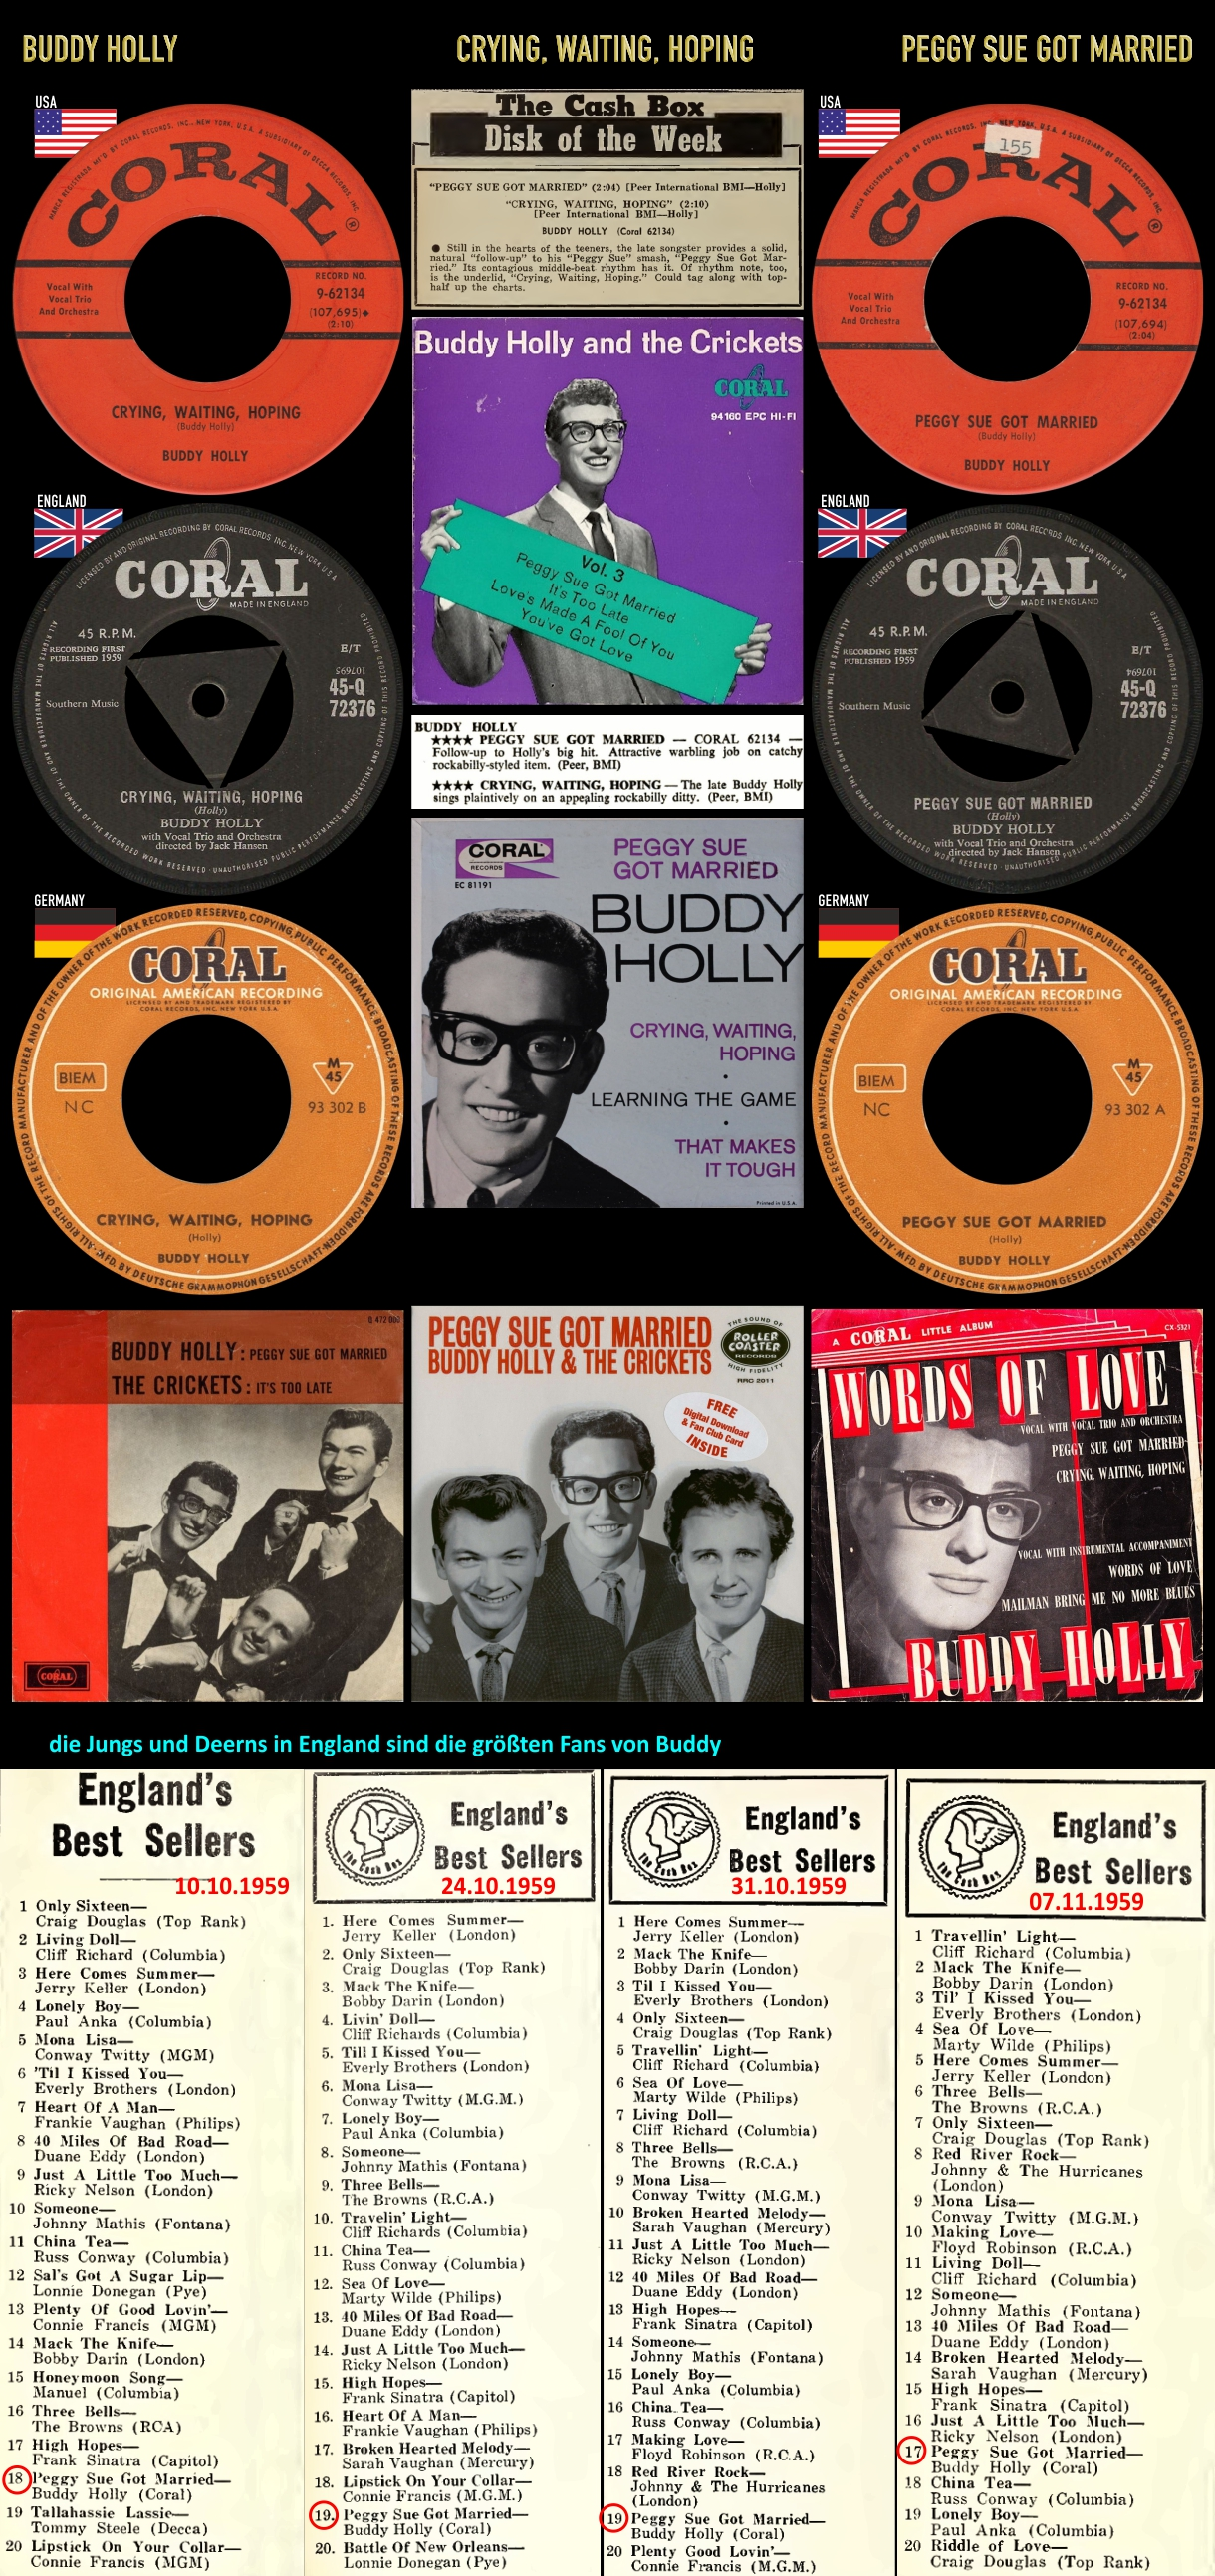 590912_Buddy Holly_Peggy Sue Got Married_Crying, Waiting, Hoping